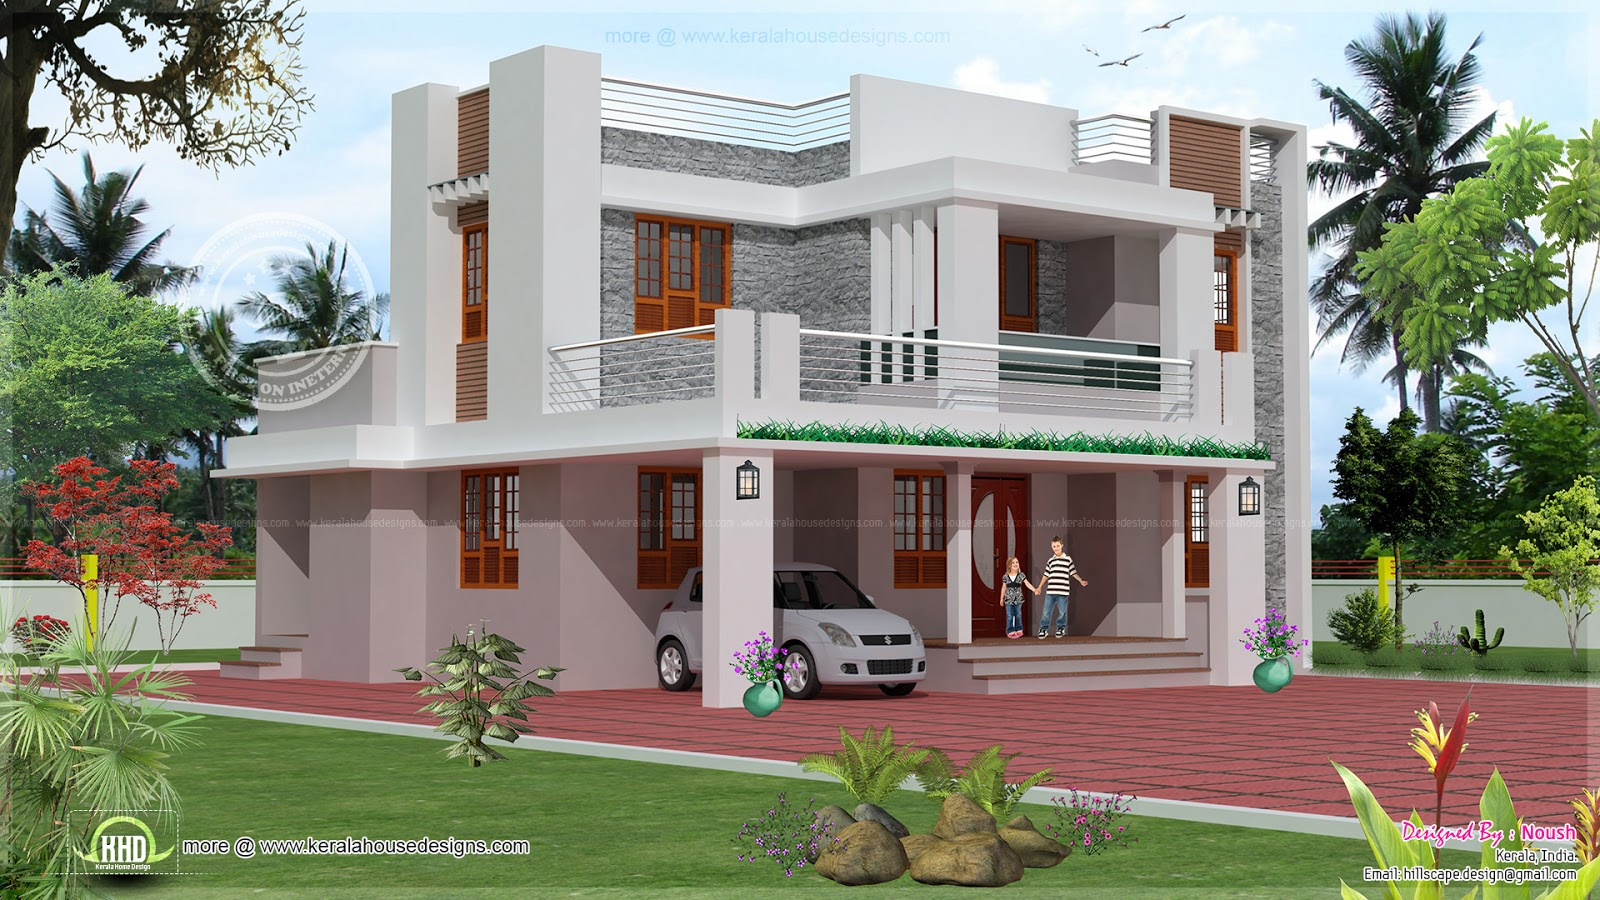 4 bedroom 2 story house exterior design house design plans for 2 story bedroom ideas